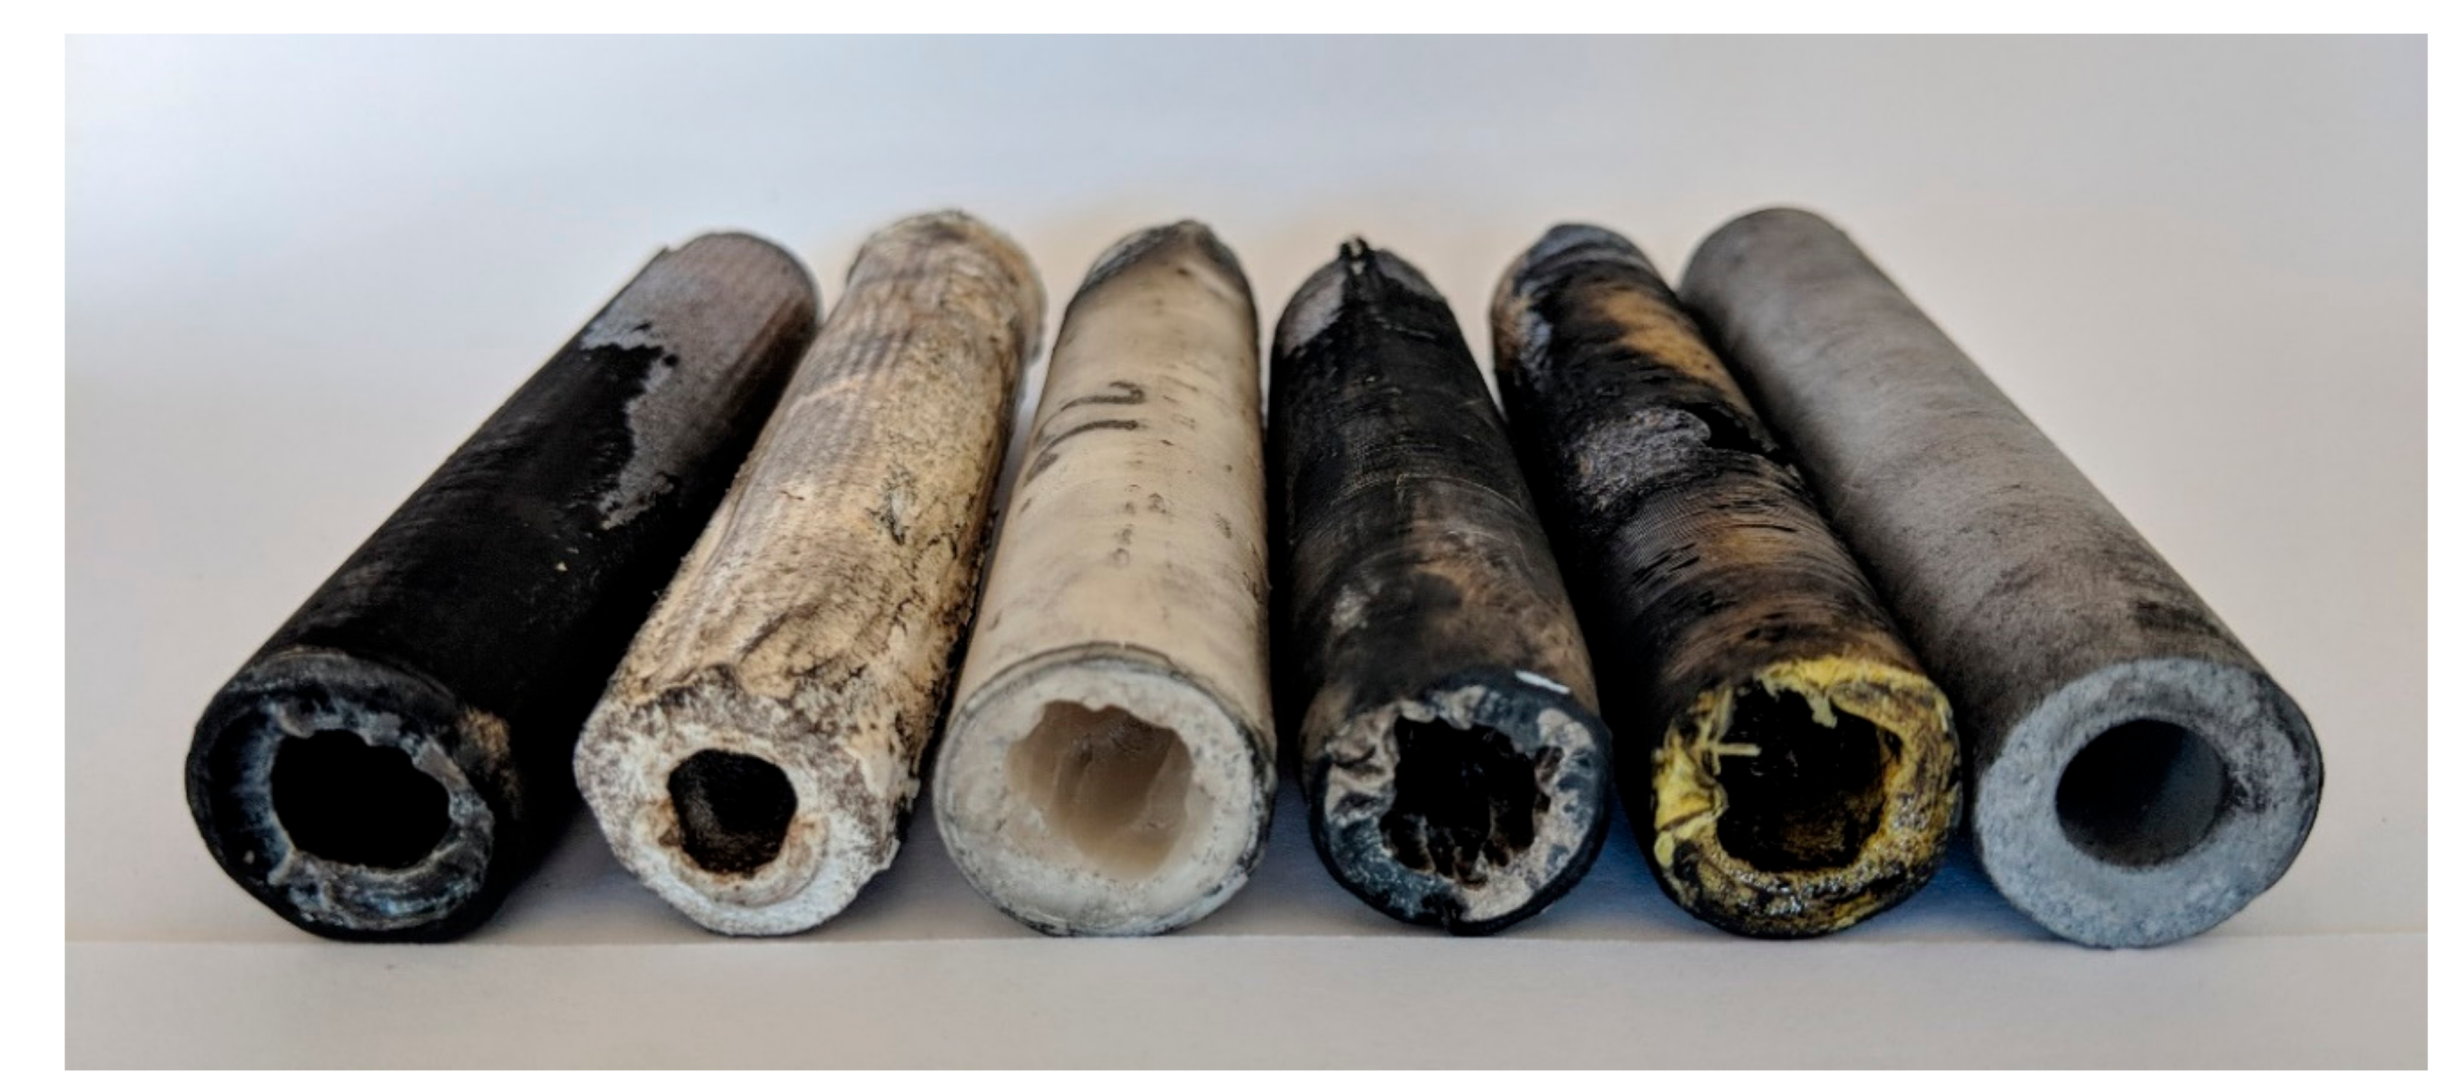 Combustion port comparisons, left to right: ABS, PLA, PP, ASA, PTEG, and AL. Photo via JCU.